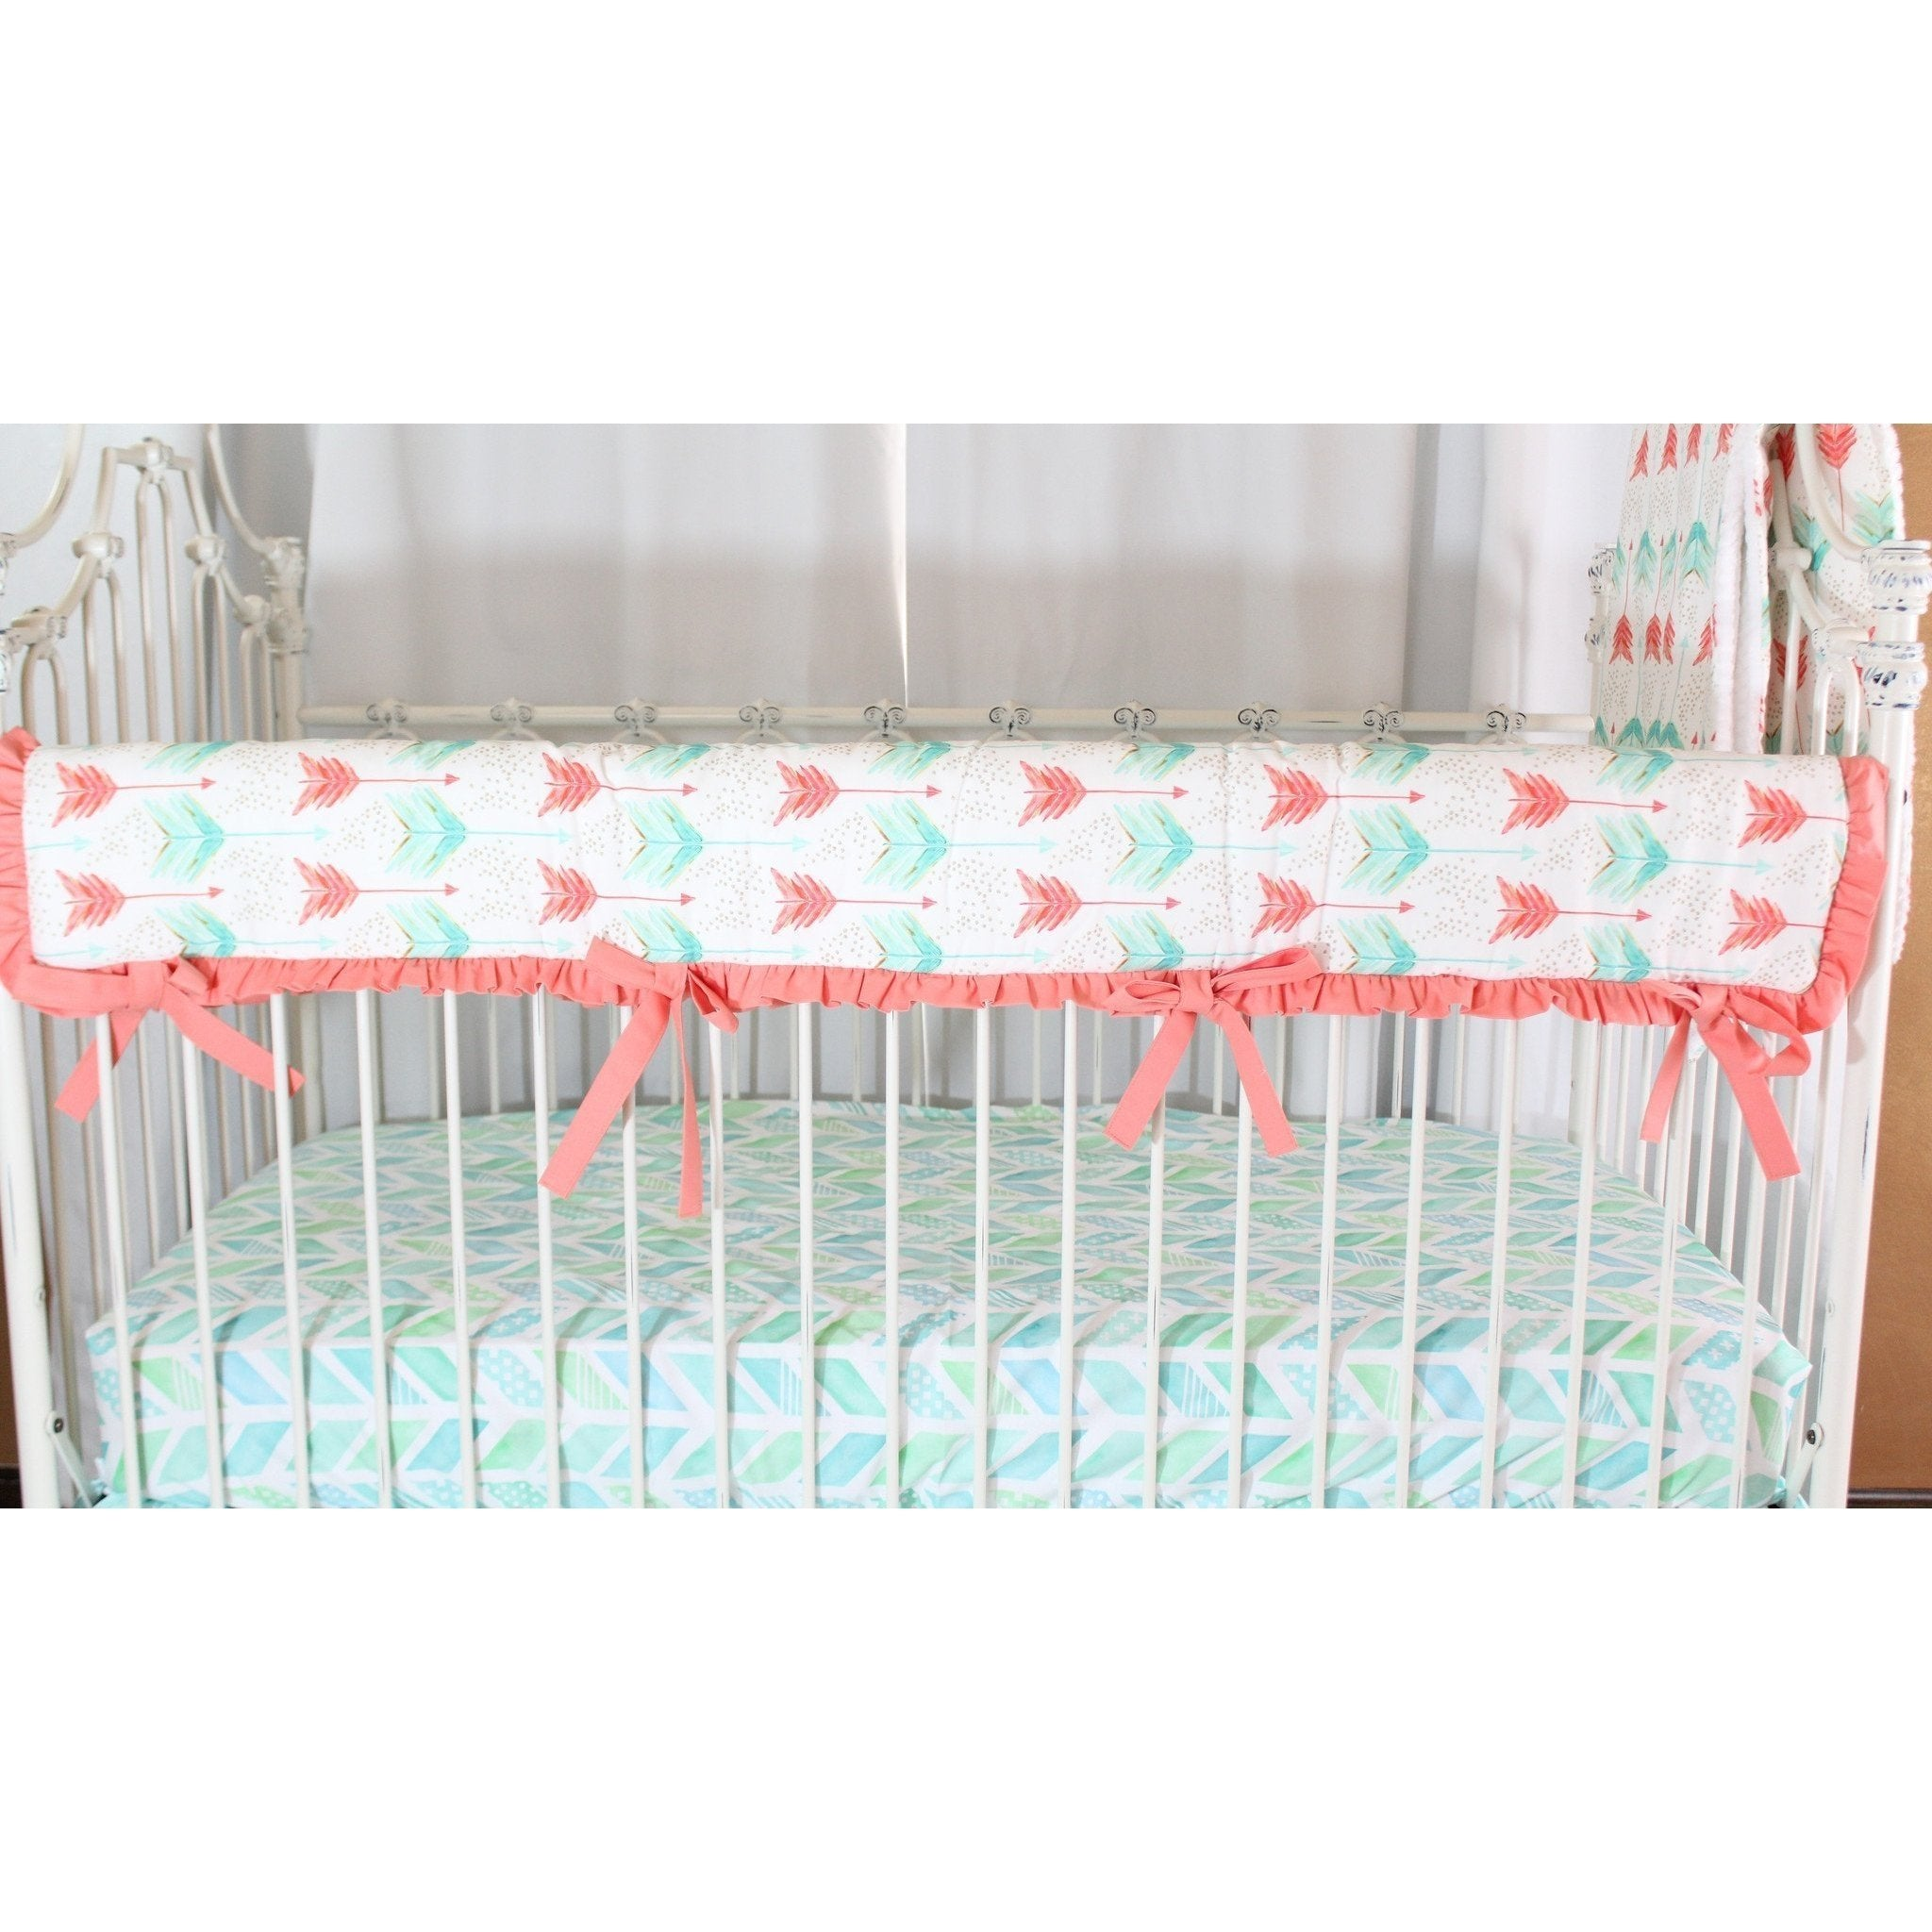 Aqua and Coral Watercolor Herringbone Baby Bedding – Jack and Jill